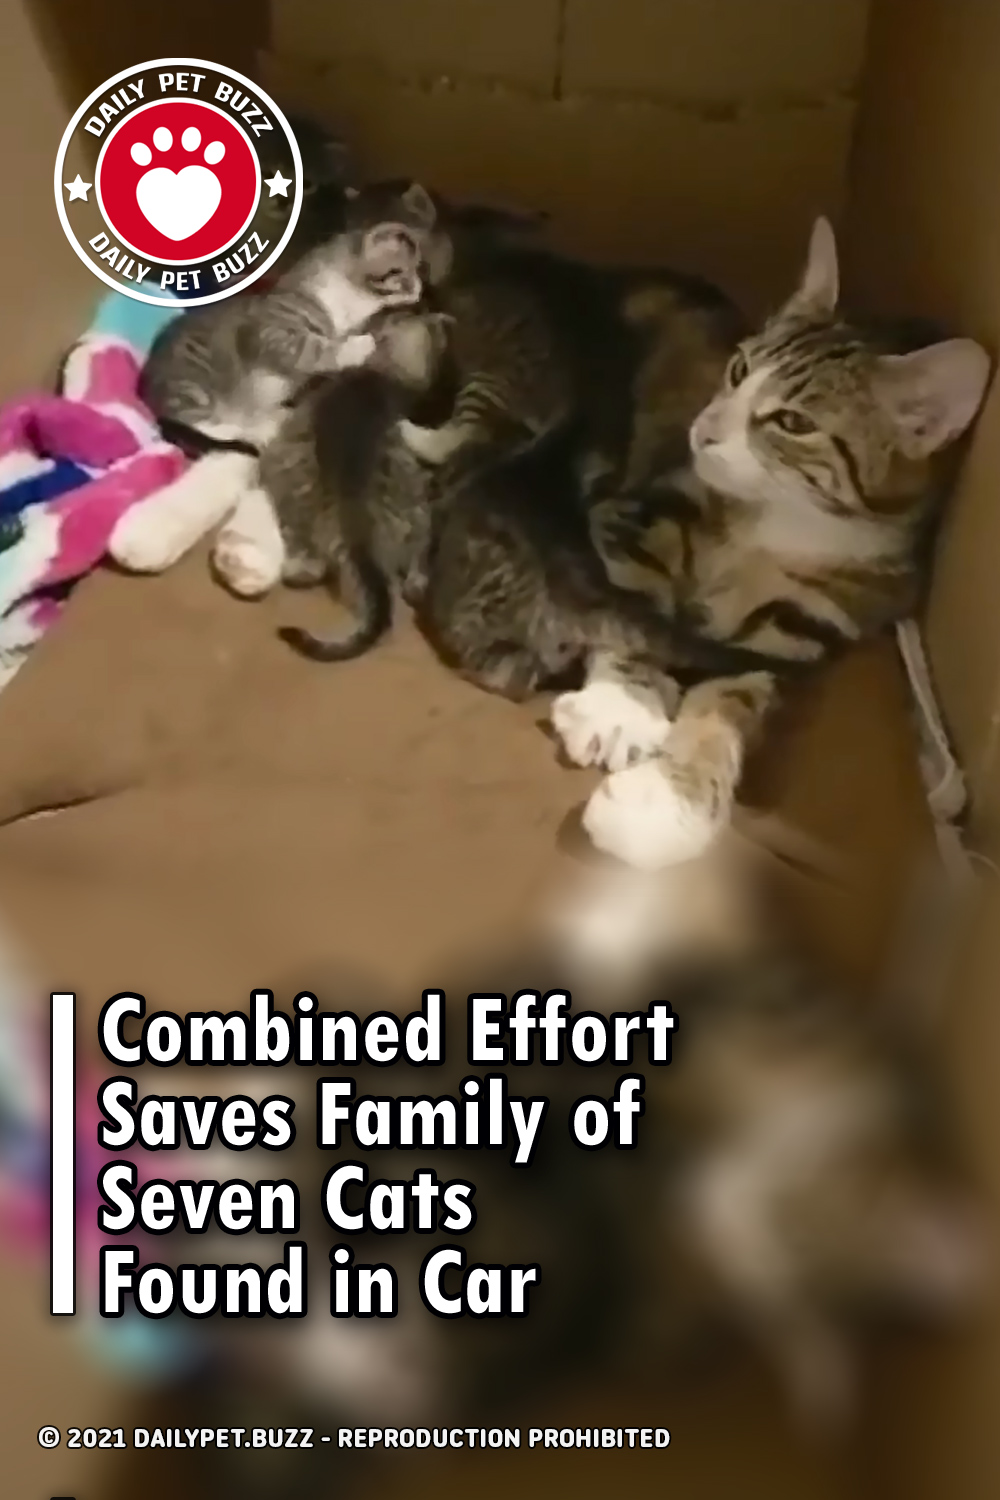 Combined Effort Saves Family of Seven Cats Found in Car